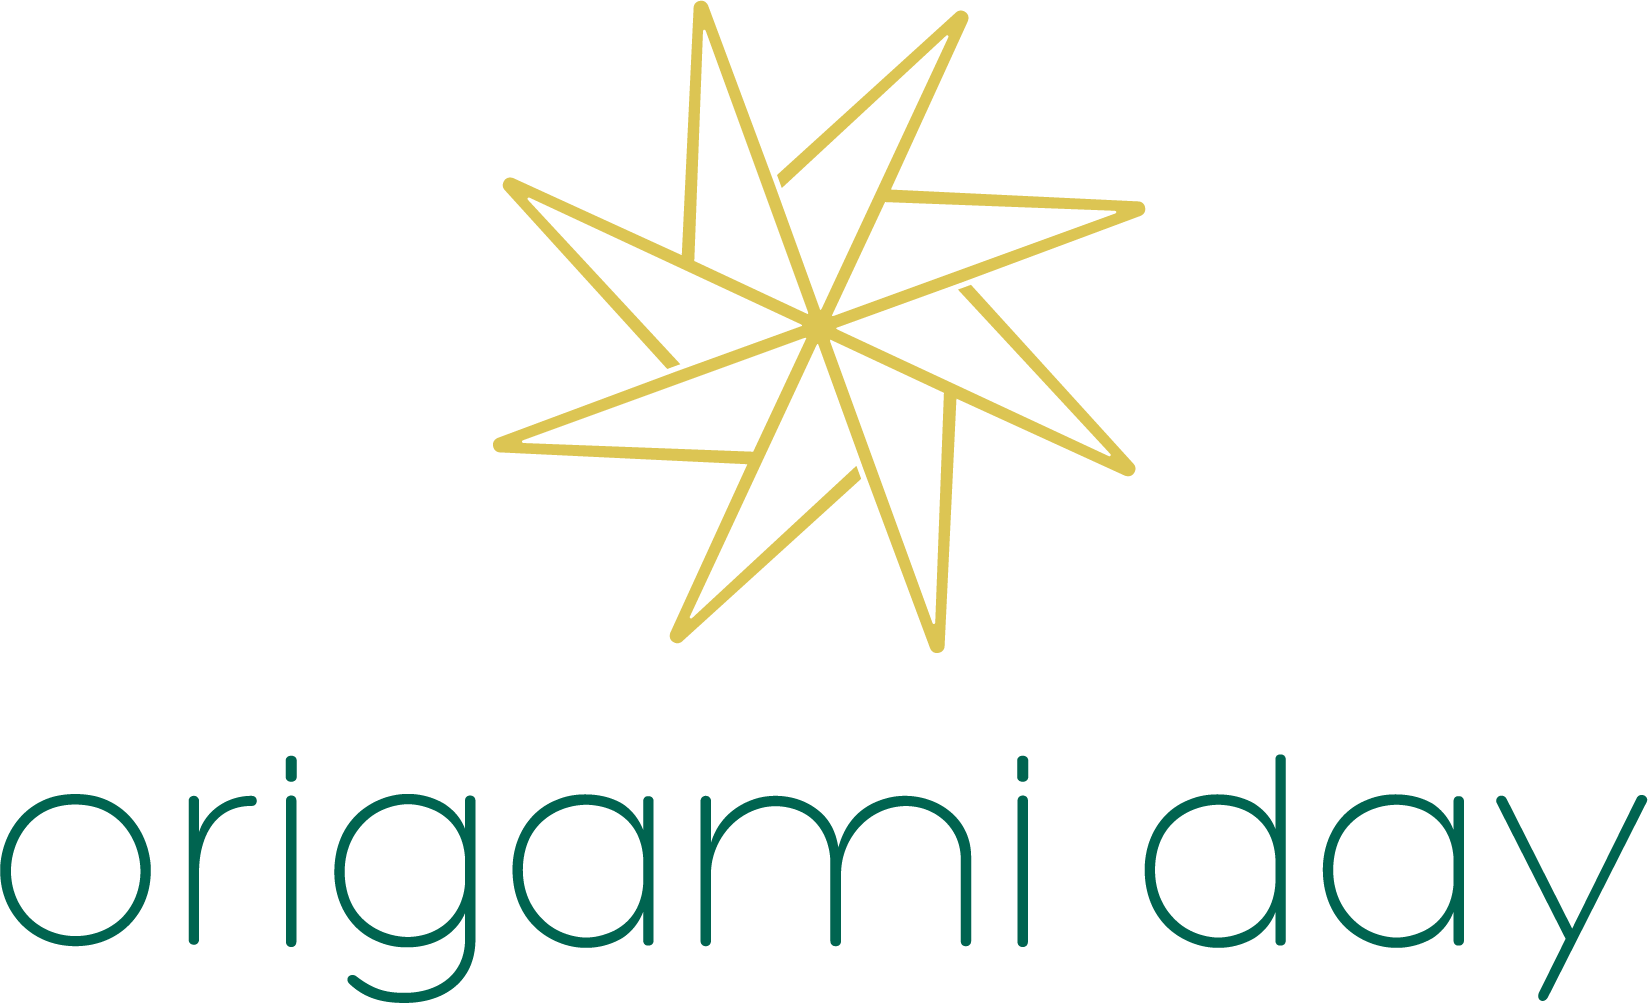 Origami Day logo.png